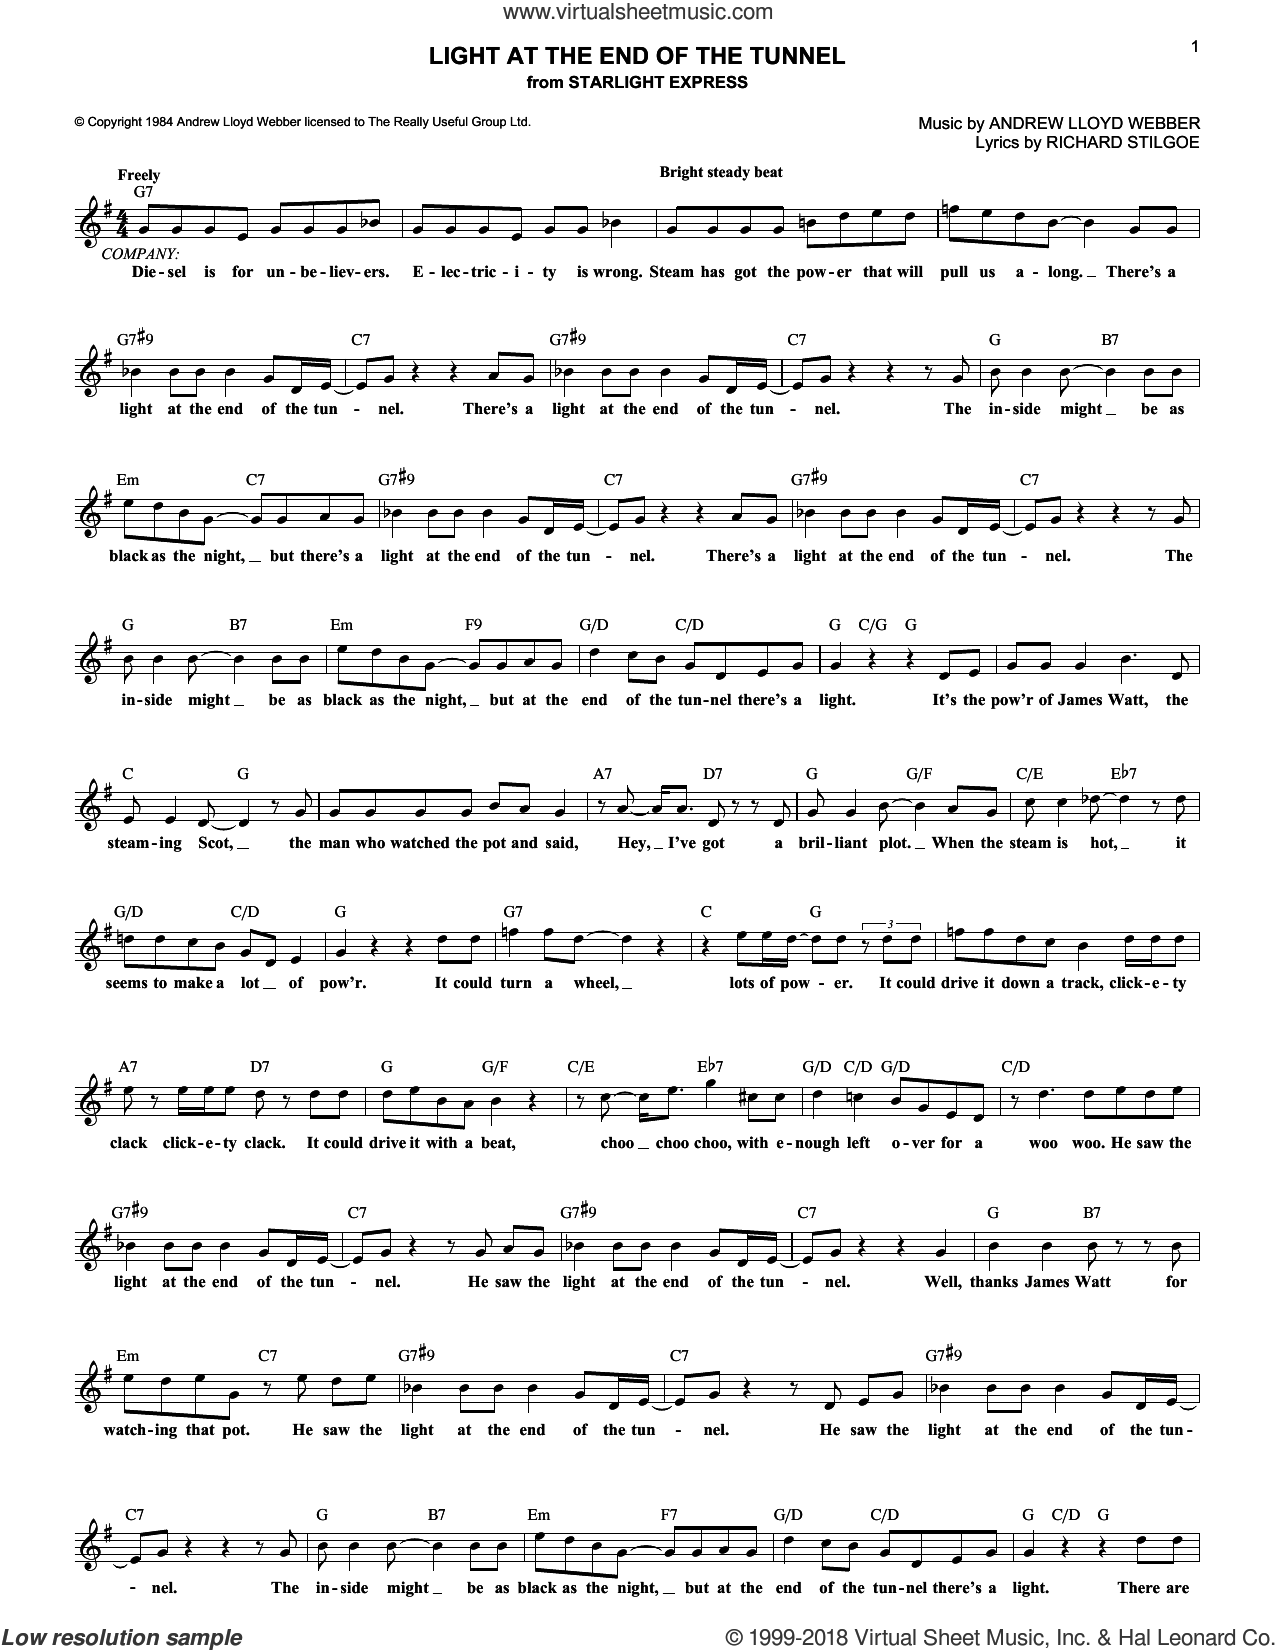 Light At The End Of The Tunnel sheet music for voice and other instruments (fake book) by Andrew Lloyd Webber, Starlight Express (Musical) and Richard Stilgoe, intermediate skill level